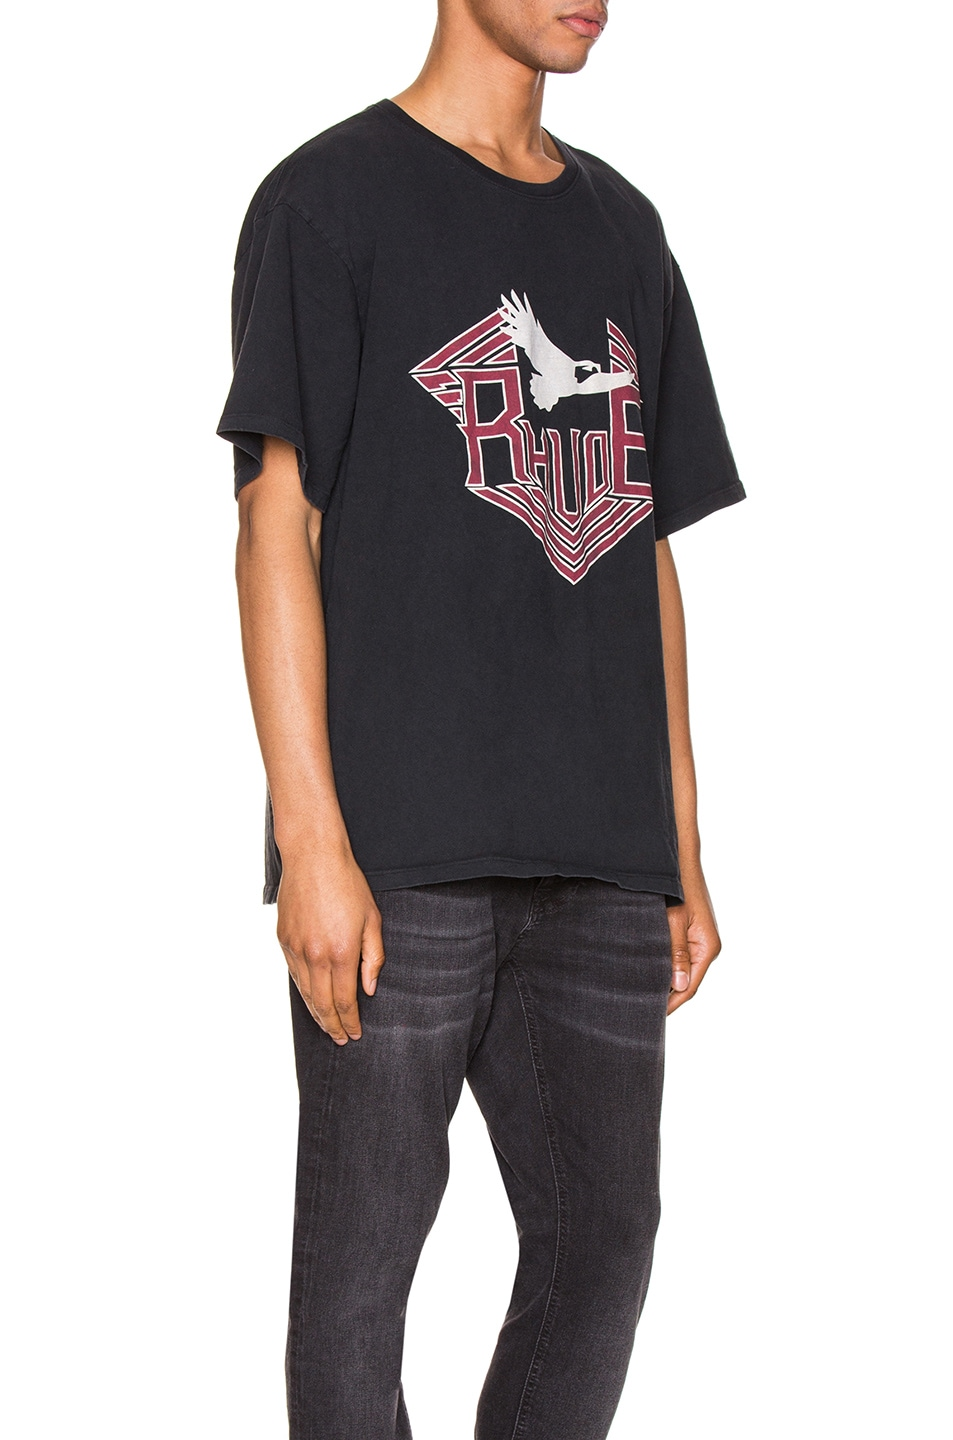 Image 2 of Rhude Rhanger Tee in Black